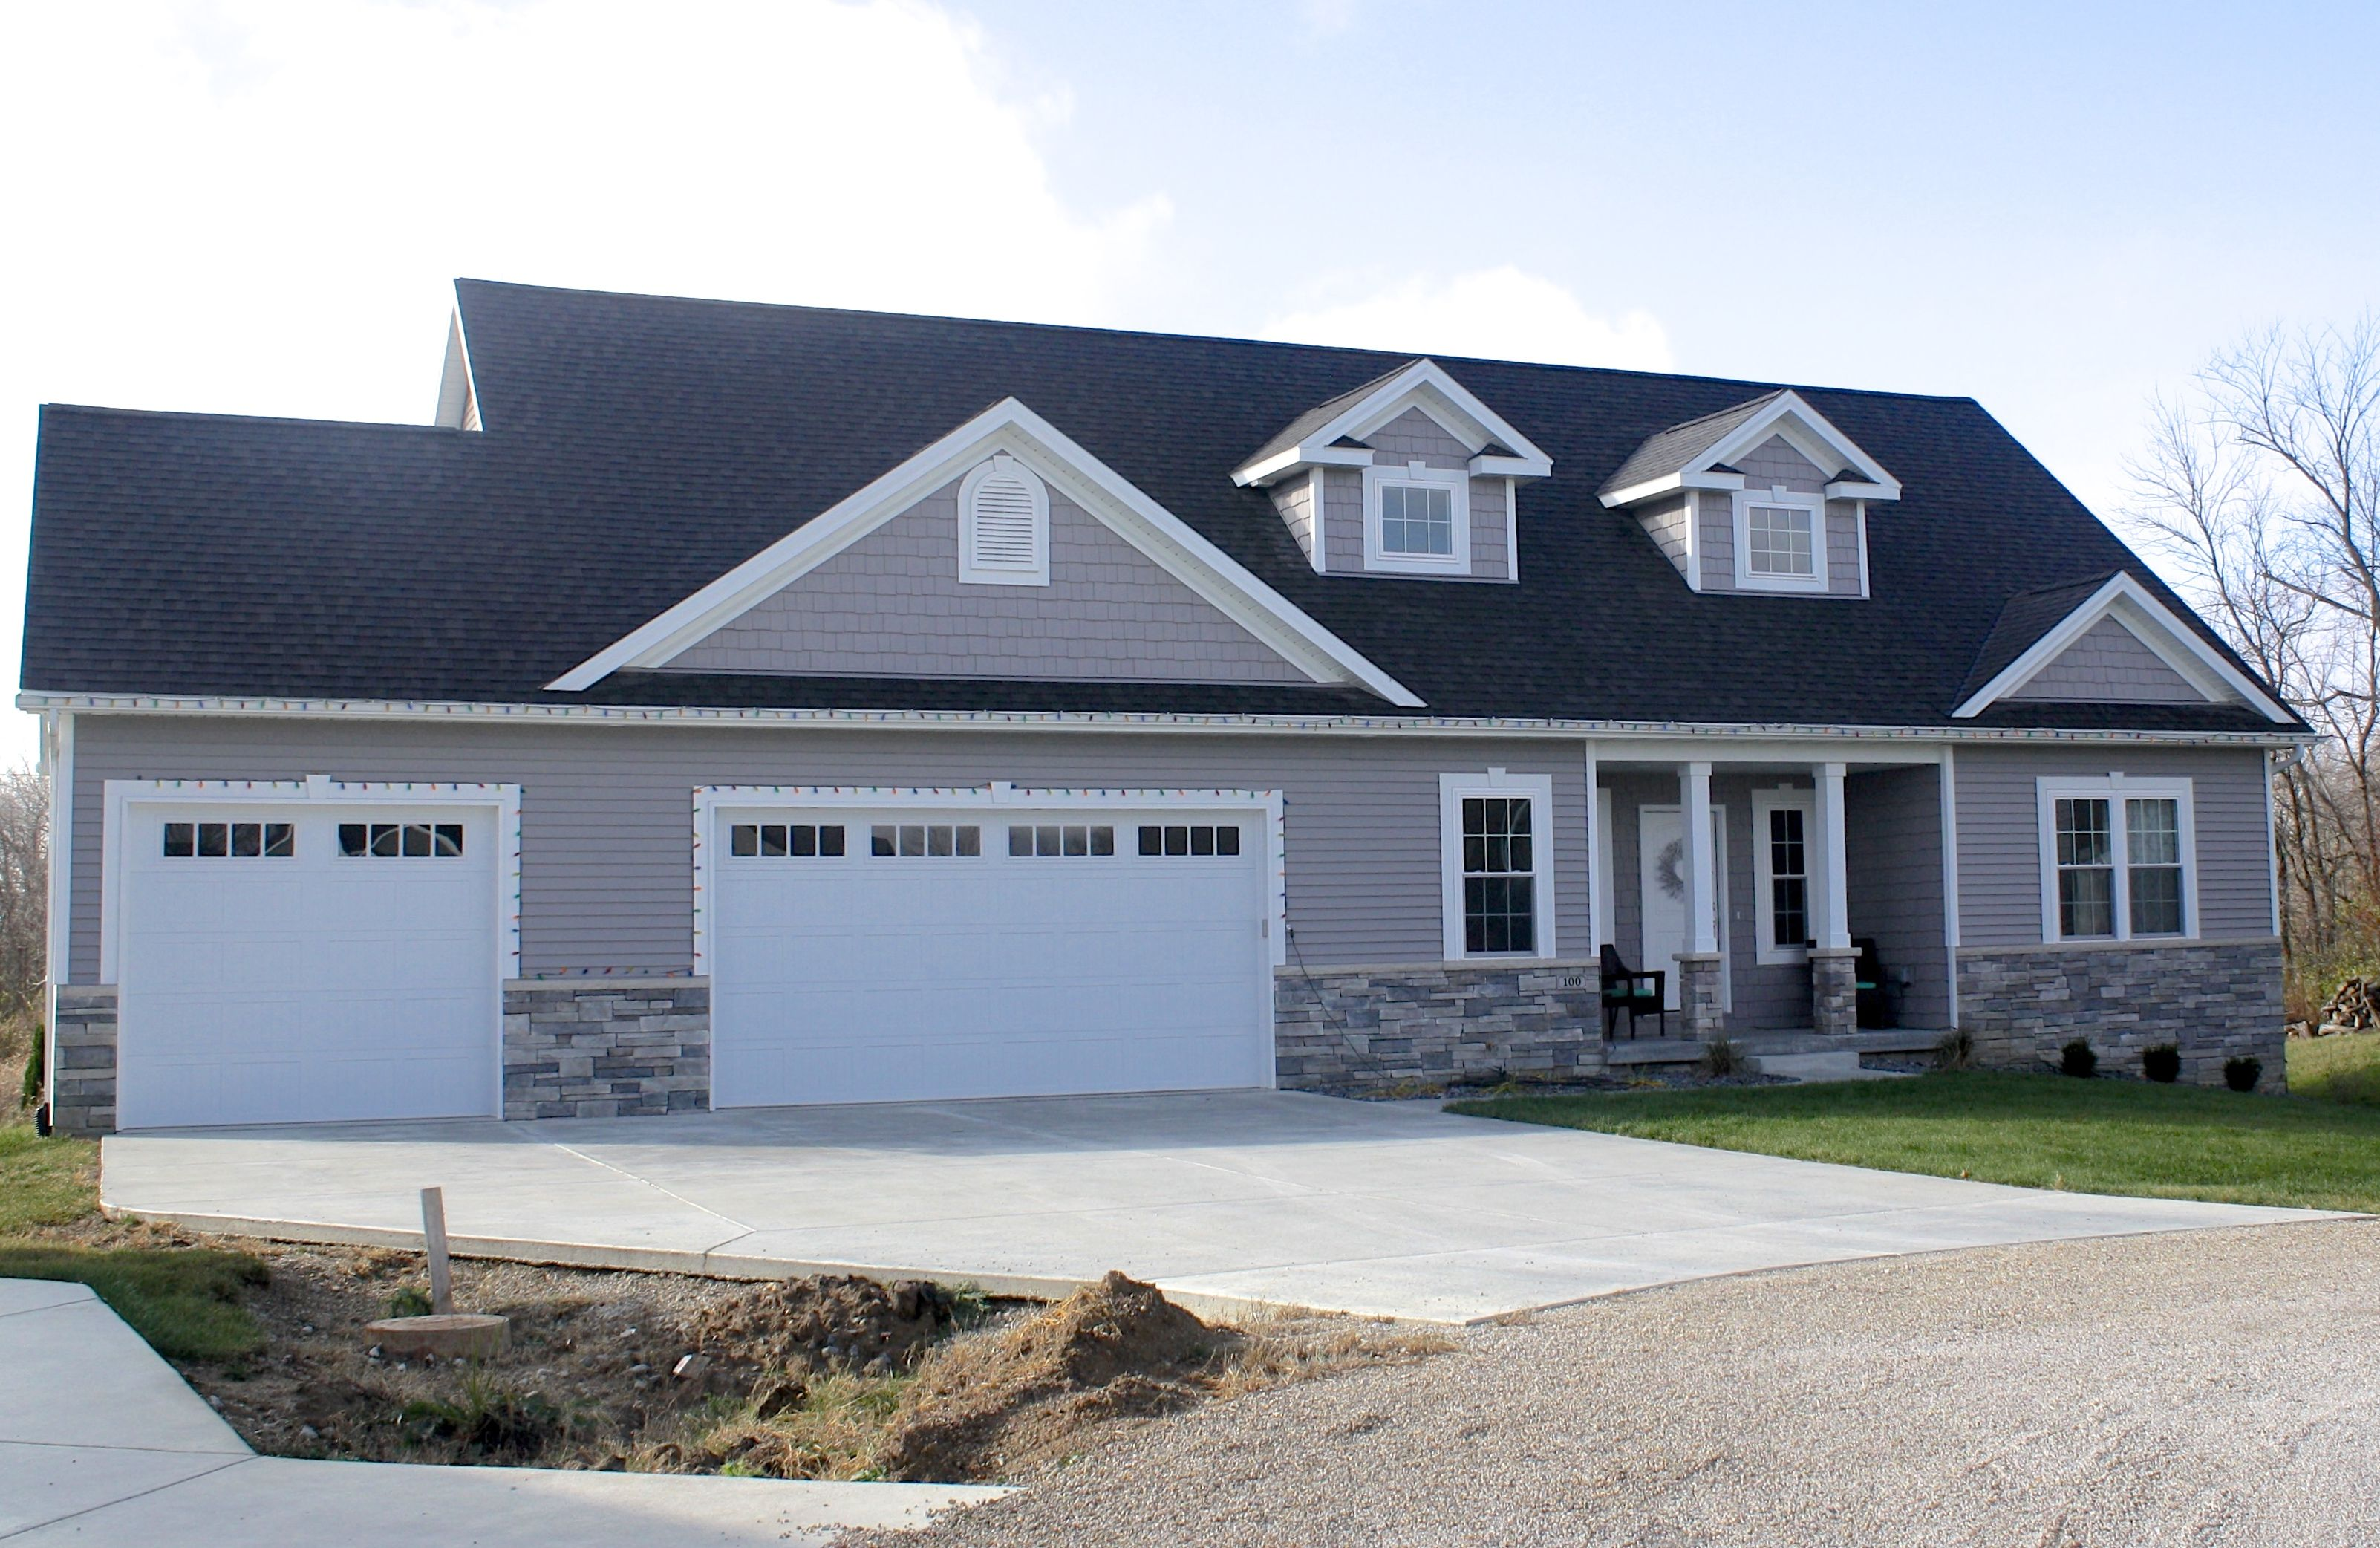 Mastic Harbor Grey Siding And Staggered Shakes